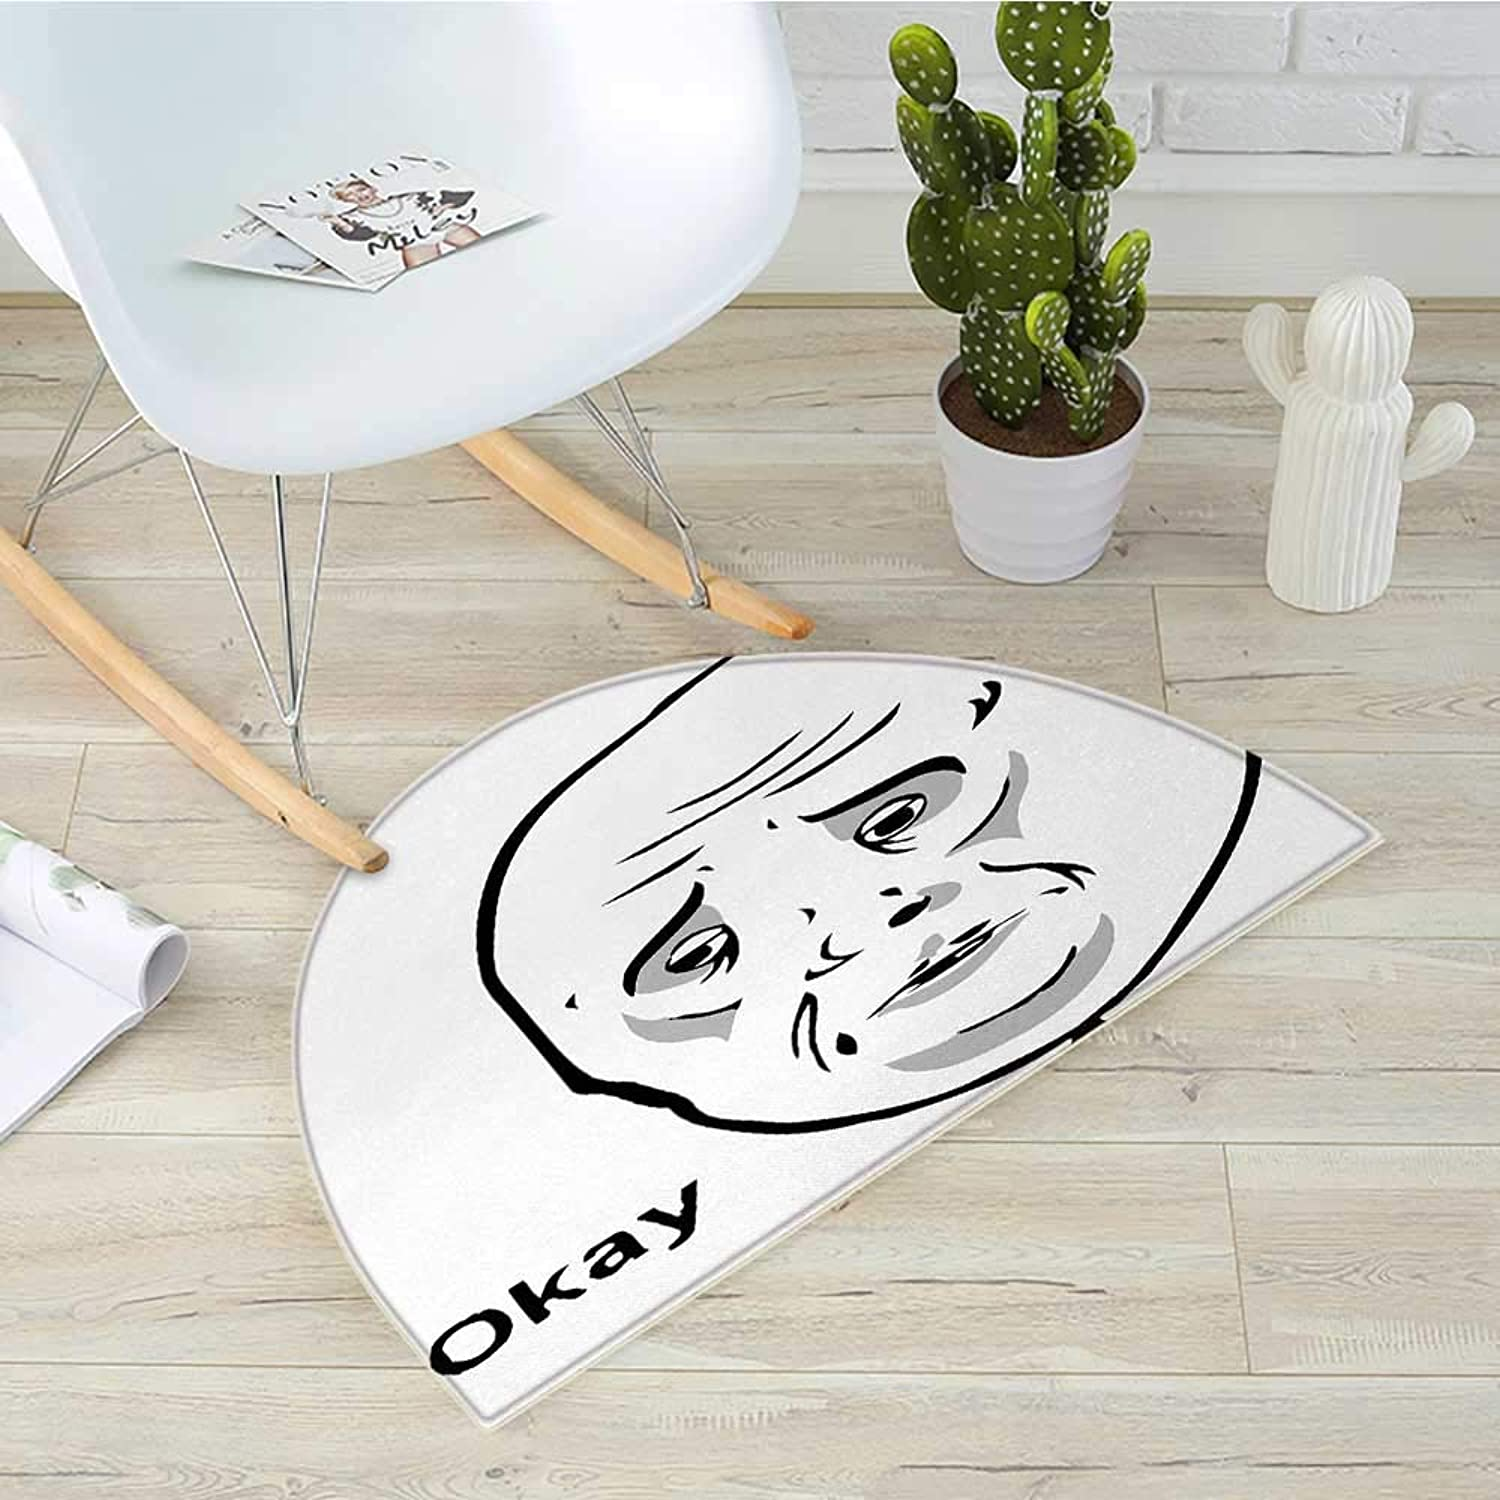 Humor Semicircular CushionOkay Guy Famous Fun Expression with Long Face Hipster Style Online Chat Print Entry Door Mat H 43.3  xD 64.9  Black and White